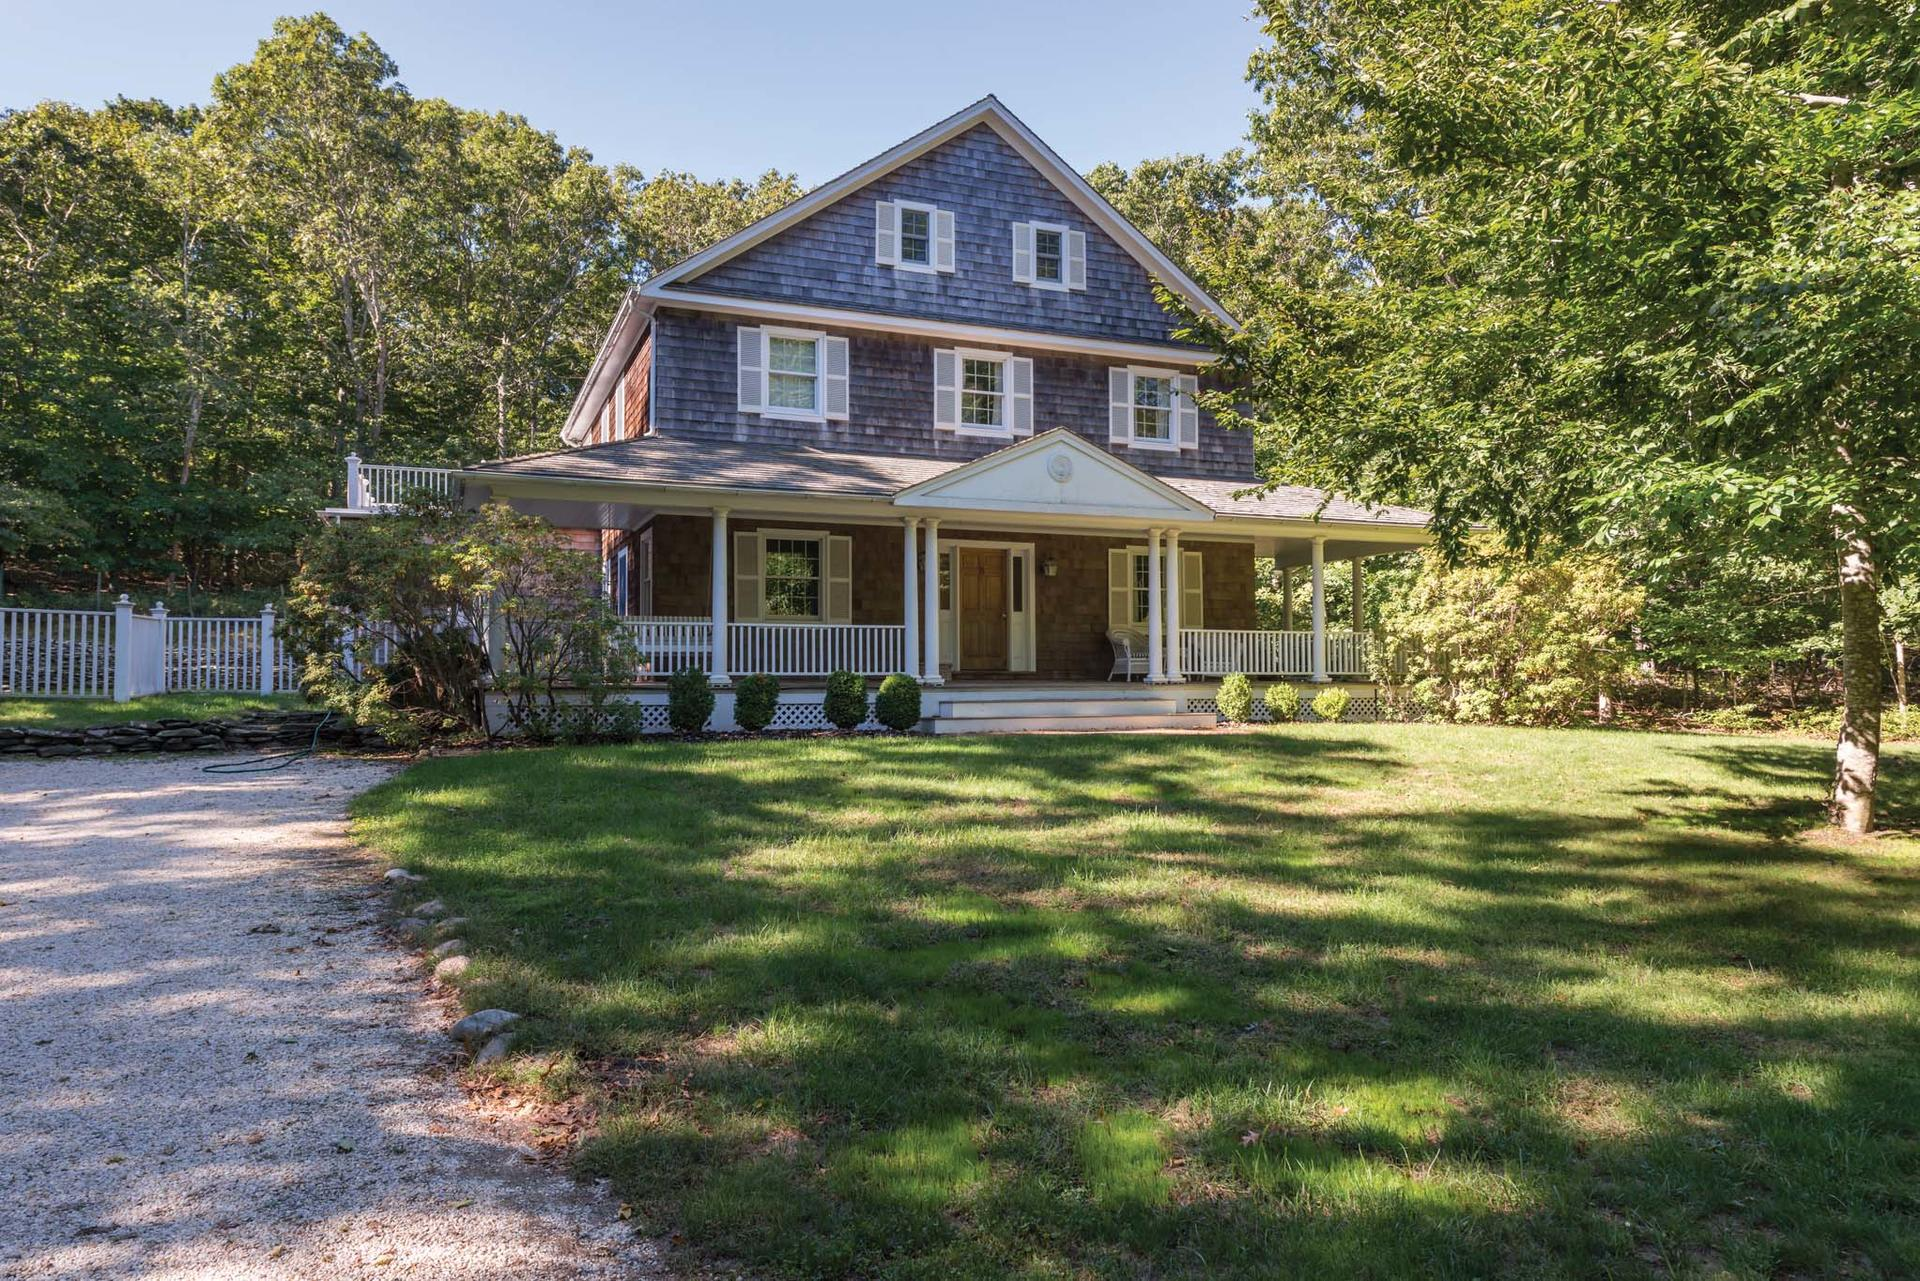 Single Family Home for Sale at Amagansett Bell Estate 6 Phelan Court, Amagansett, New York